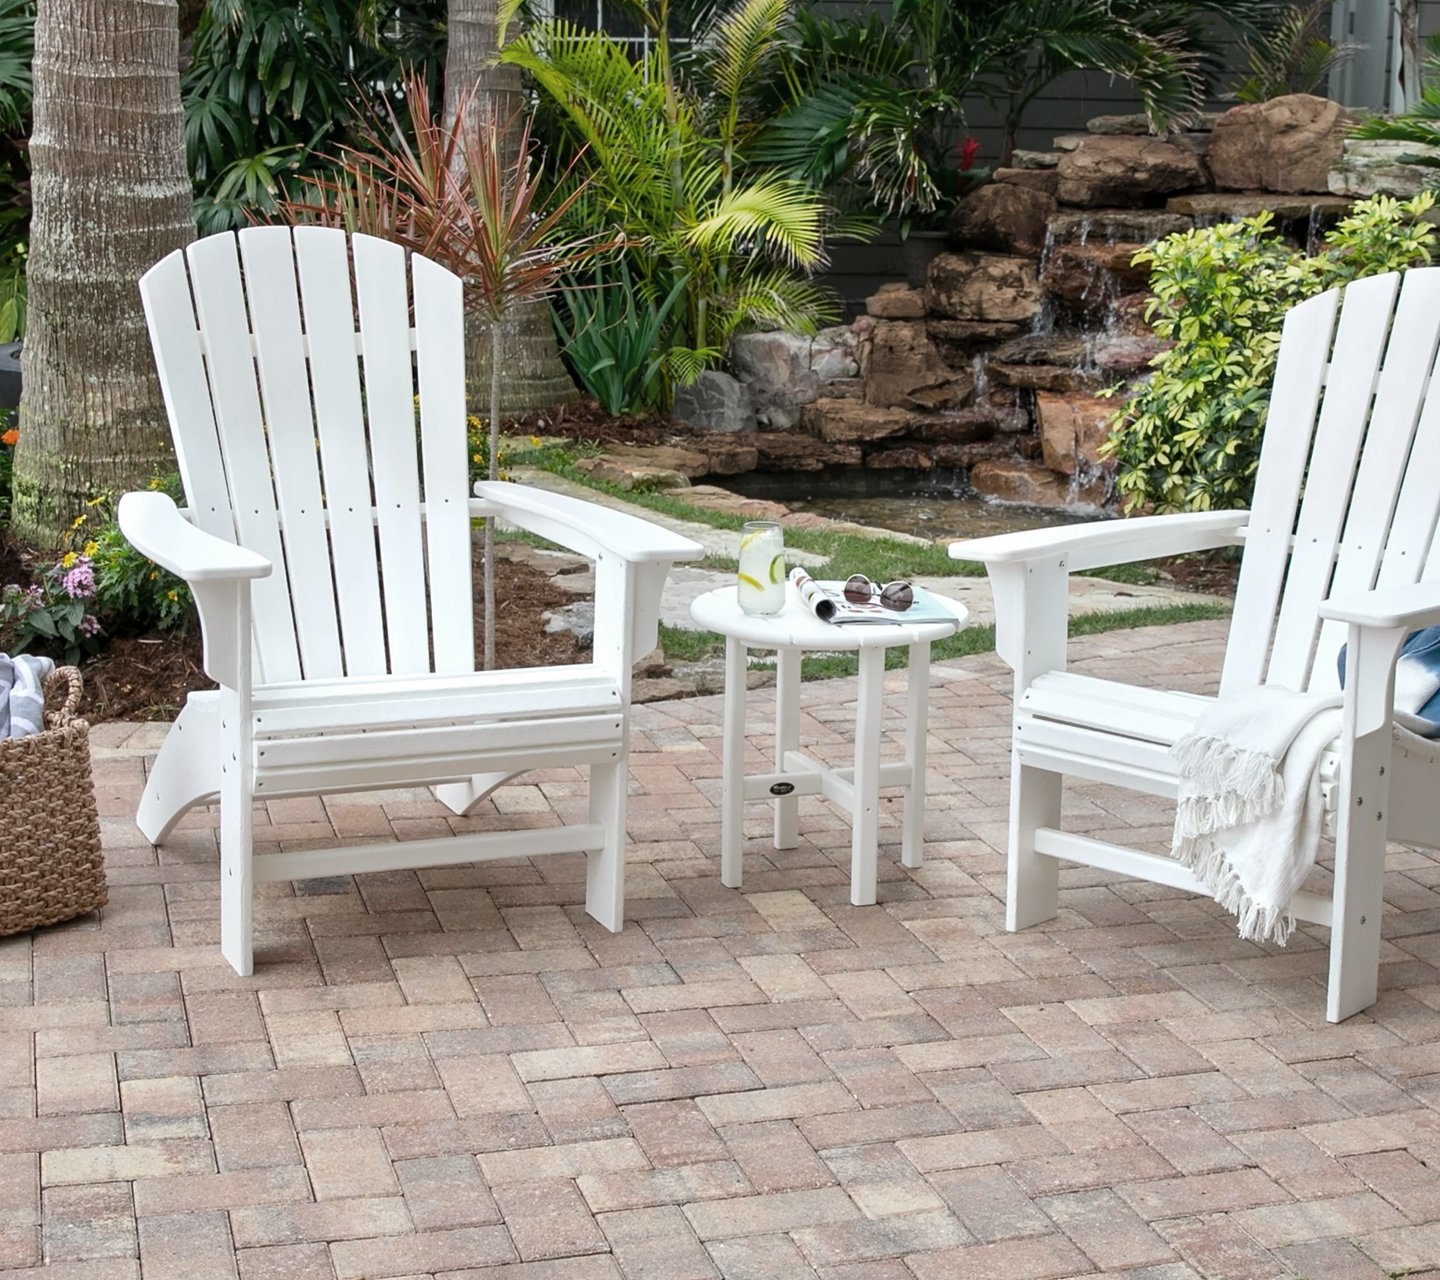 two treex white chairs on patio